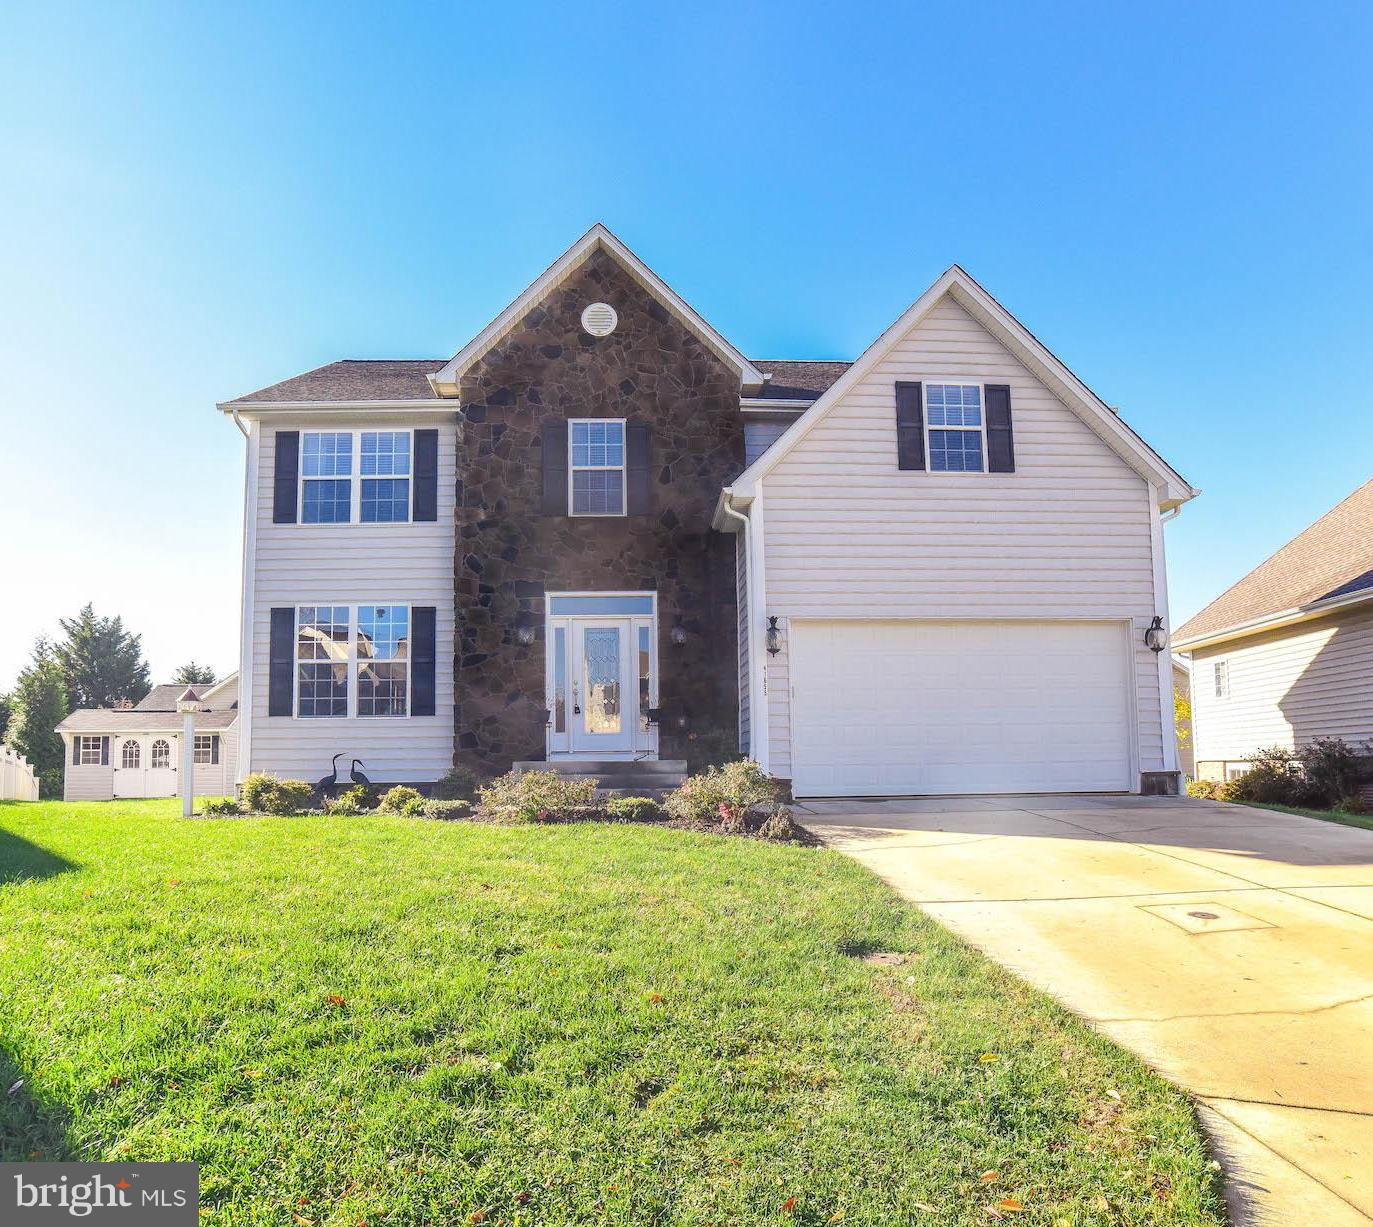 Beautifully maintained colonial in culdesac.  This home has been painstakingly cared for!! Glimmerin